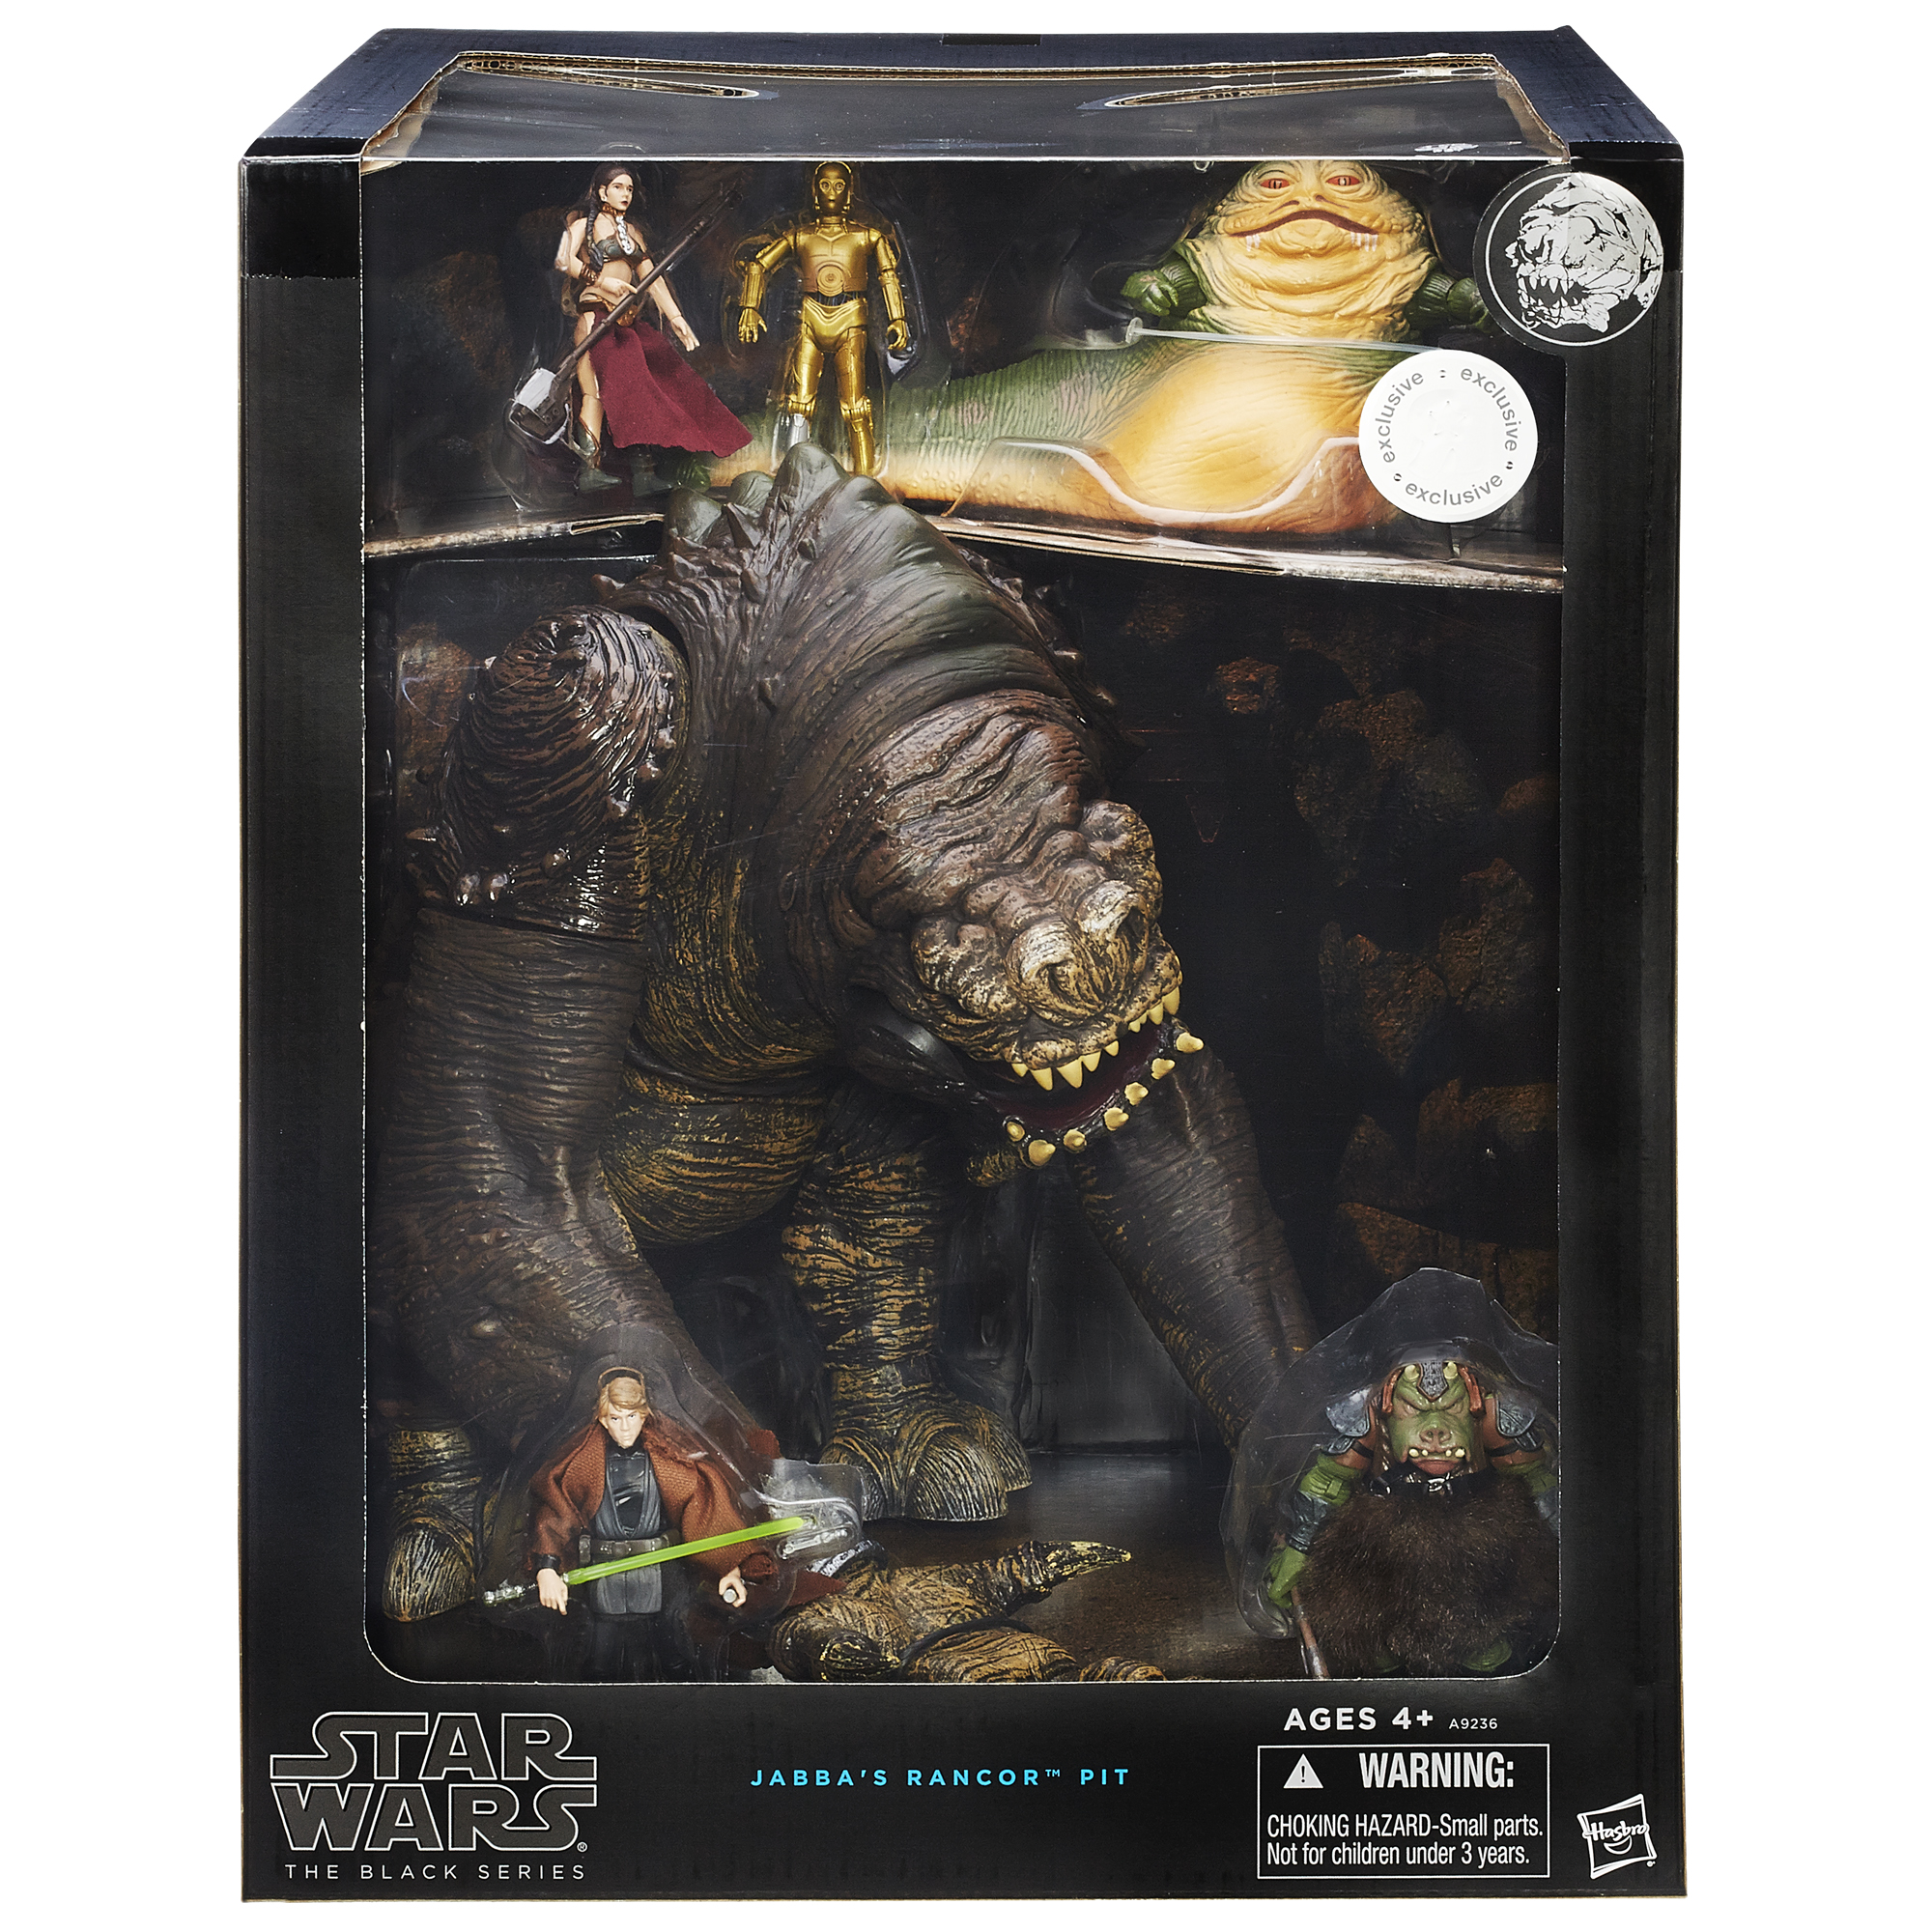 Toys Are Us Star Wars : First look toys quot r us star wars black series jabba s